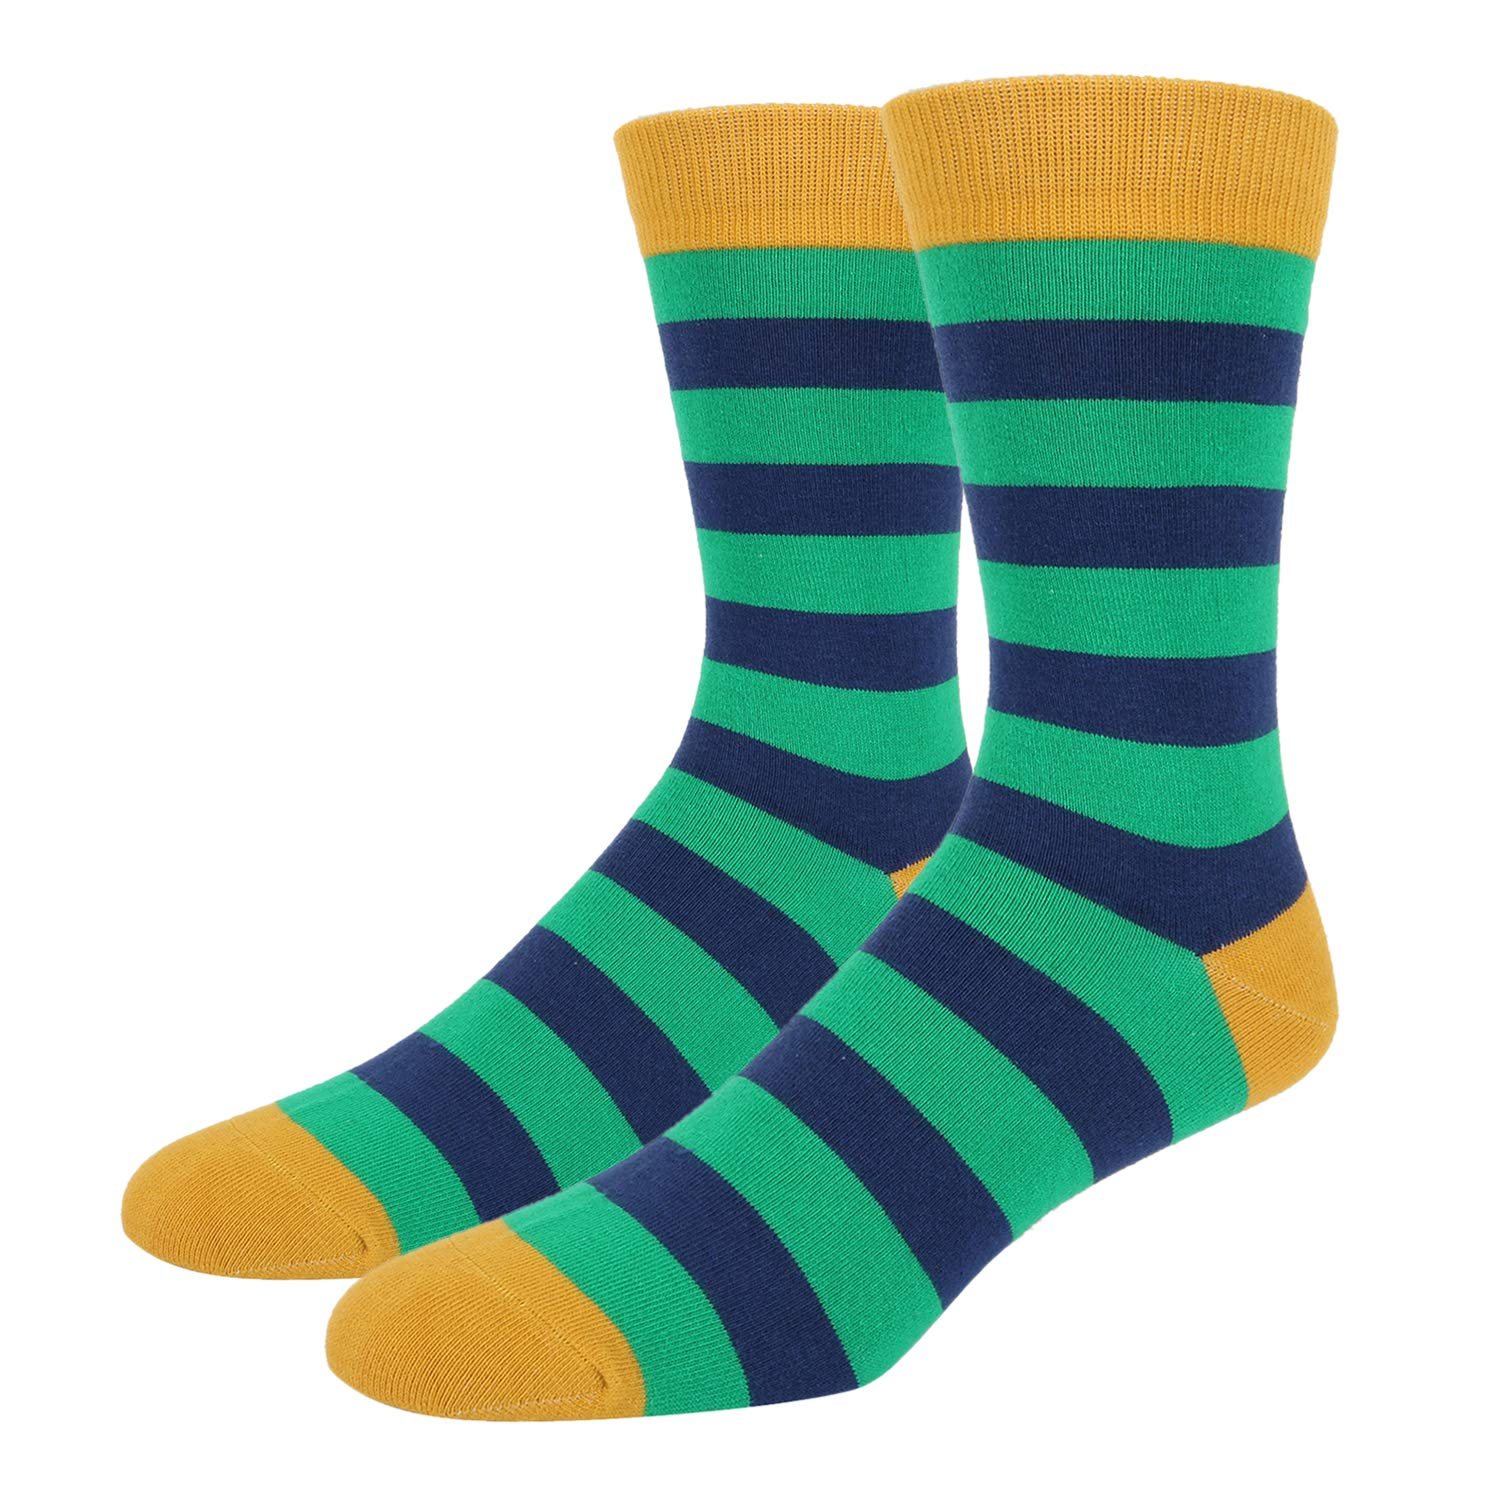 Happypop 5 Pair Mens Designer Striped Socks Cotton Rich Colorful Patterned Casual Dress Socks